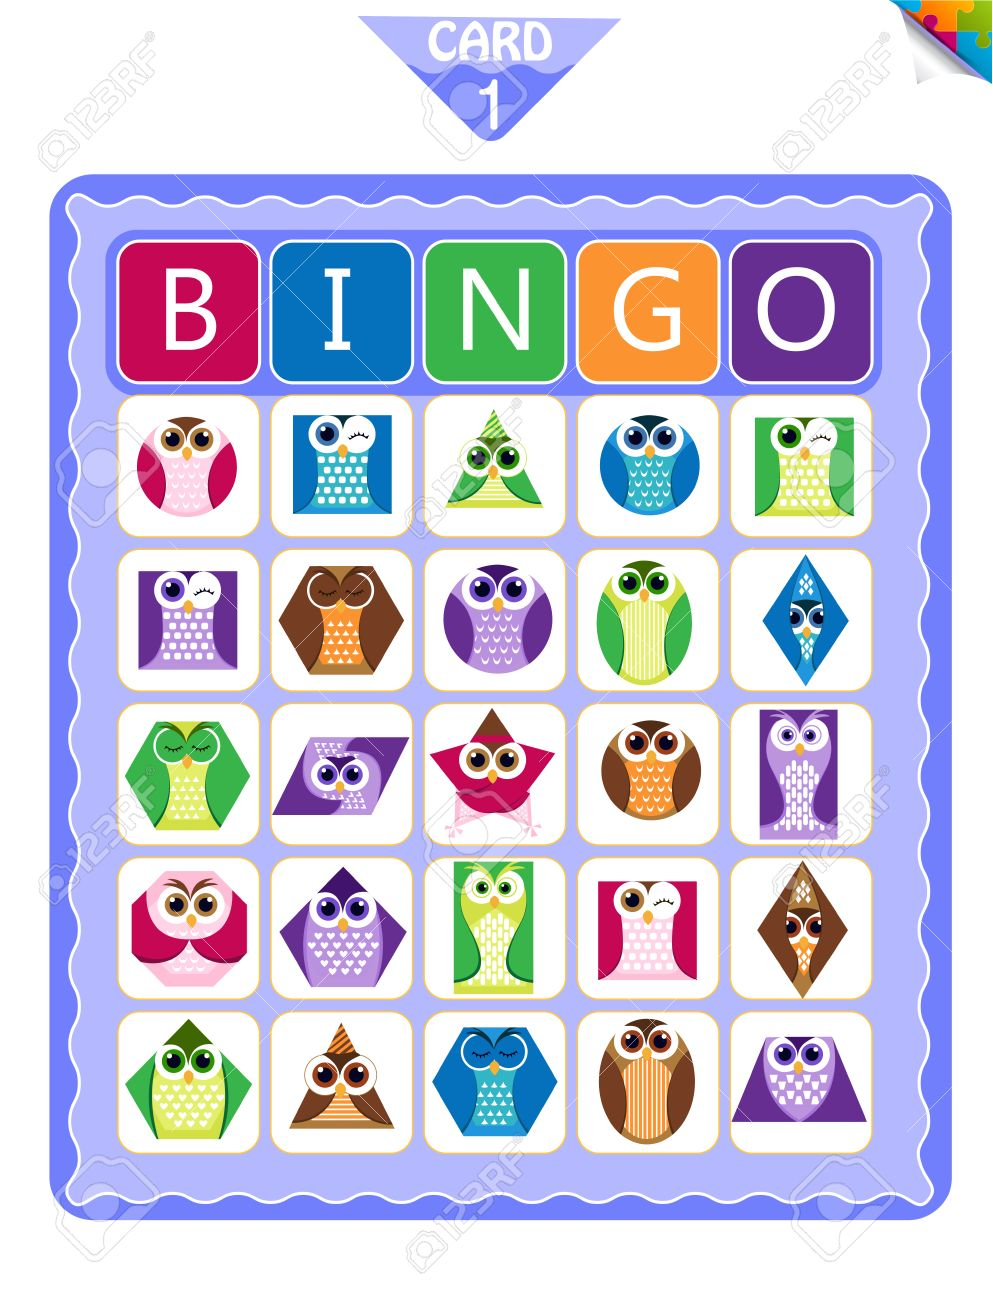 photograph regarding Printable Bingo Cards for Kids known as Printable useful bingo sport for preschool little ones with designs..